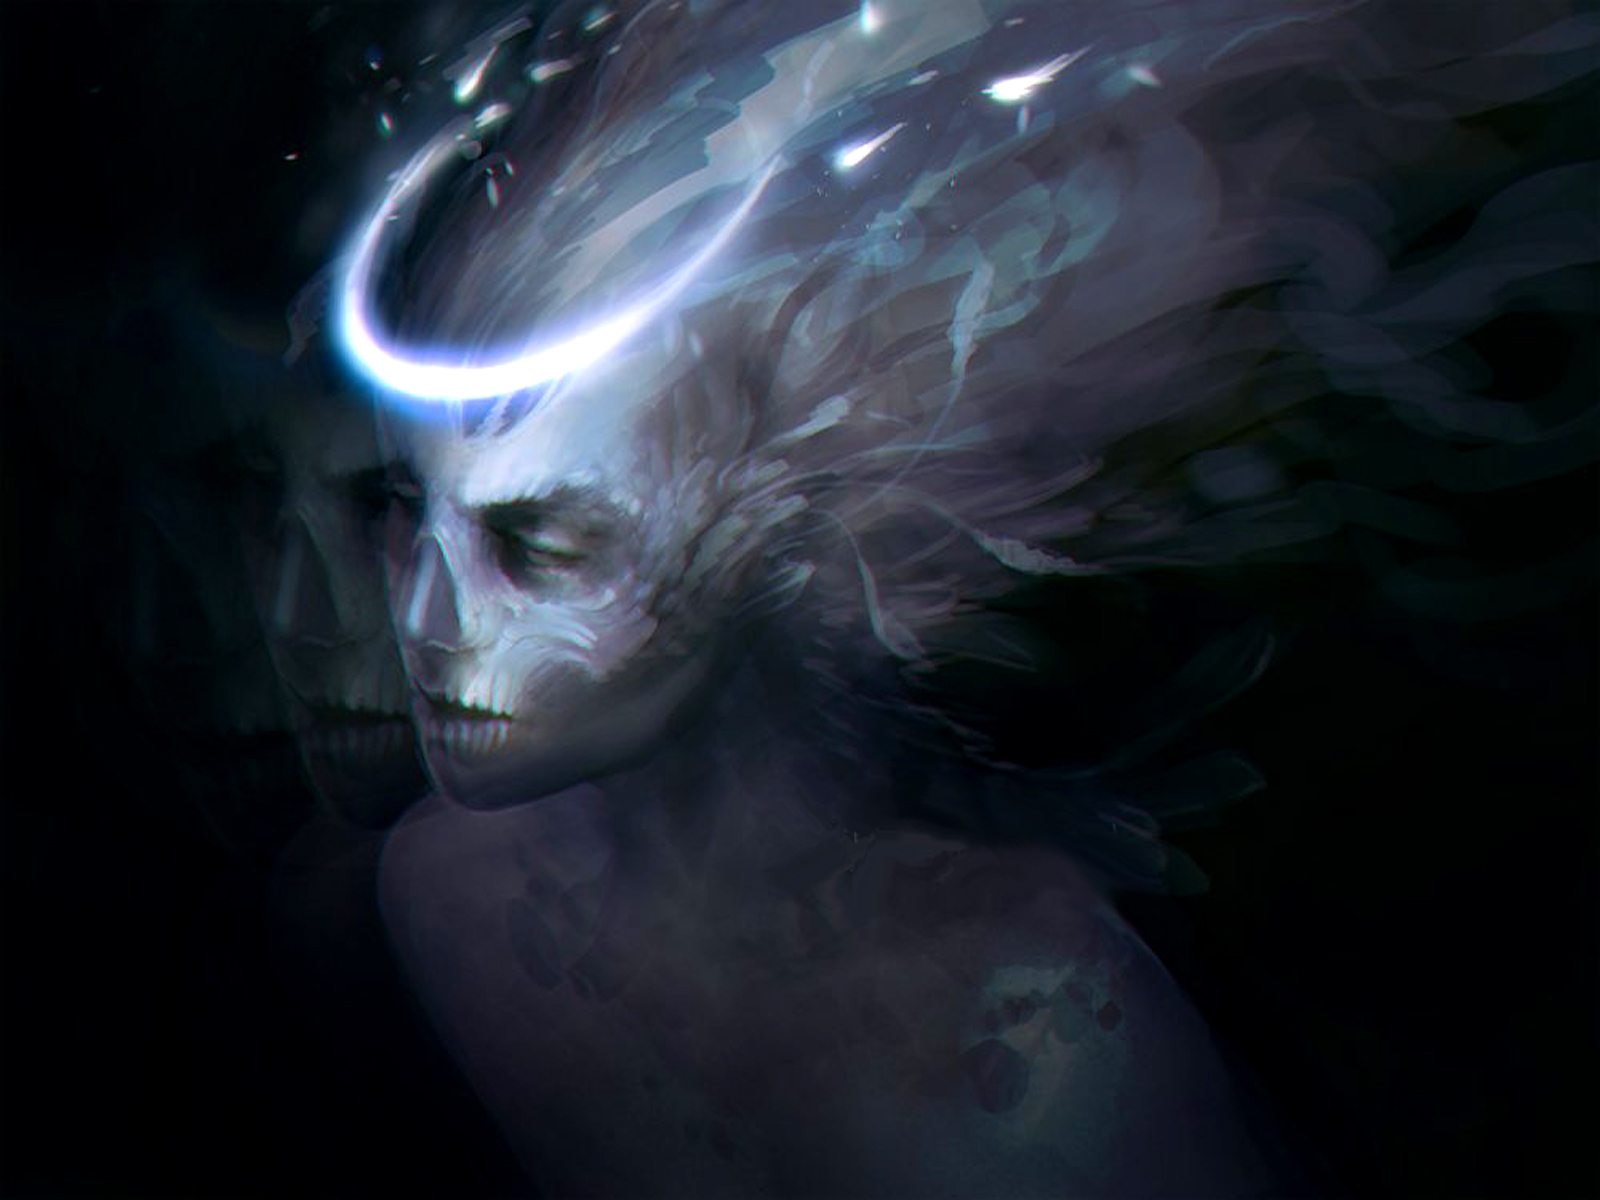 fantasy art skull witch face evil angels gothic occult demon wallpaper 1600x1200